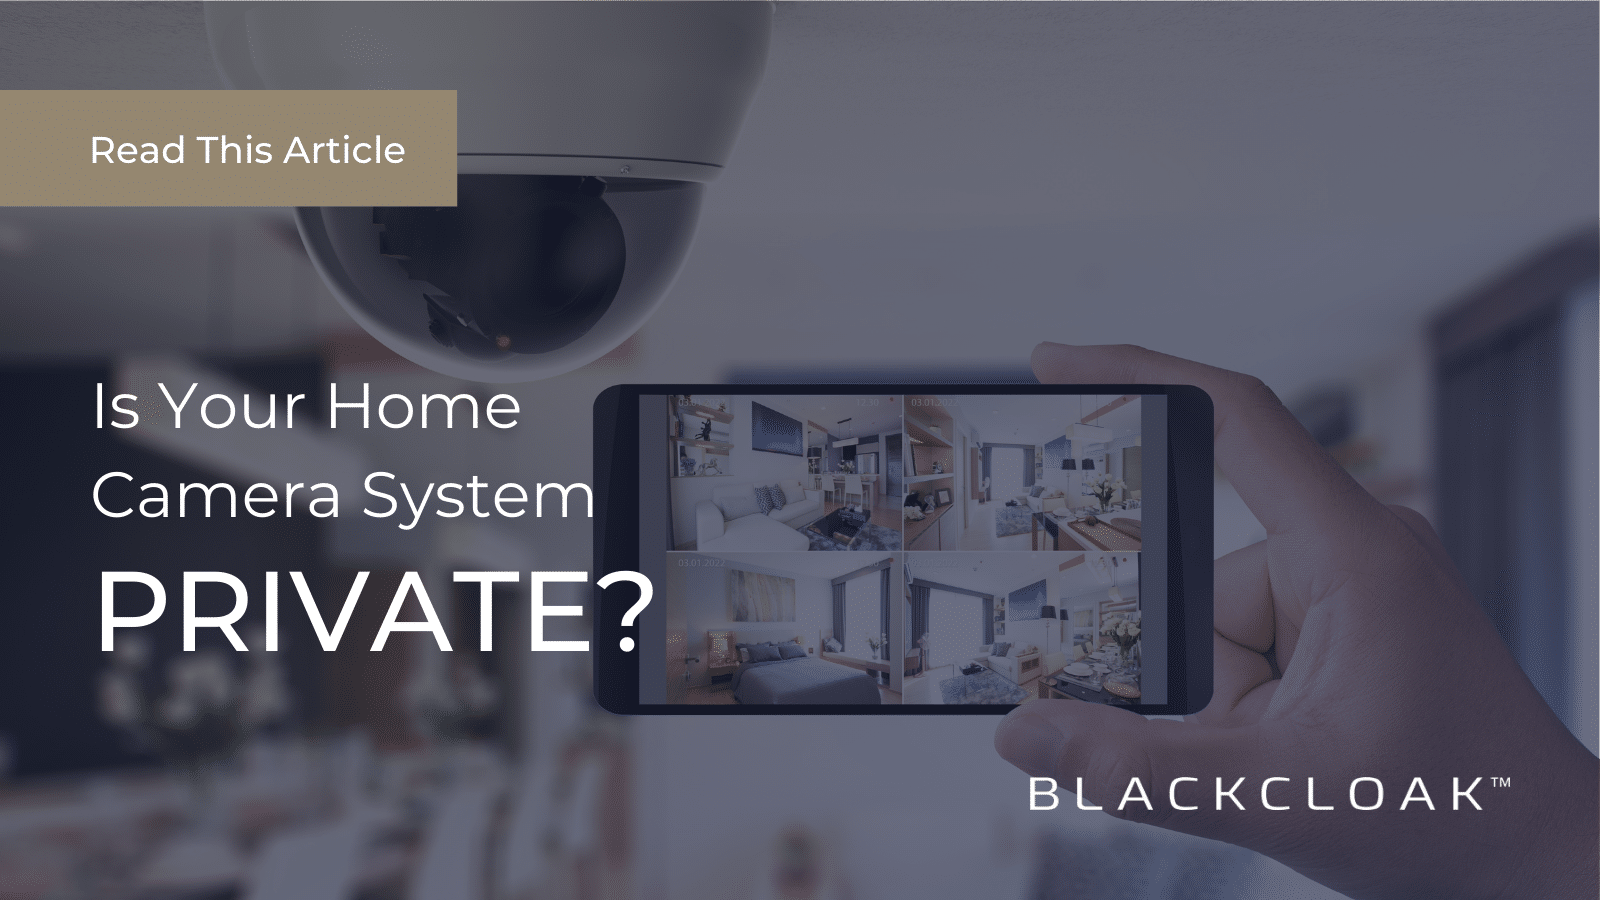 Is Your Home Camera System Private?